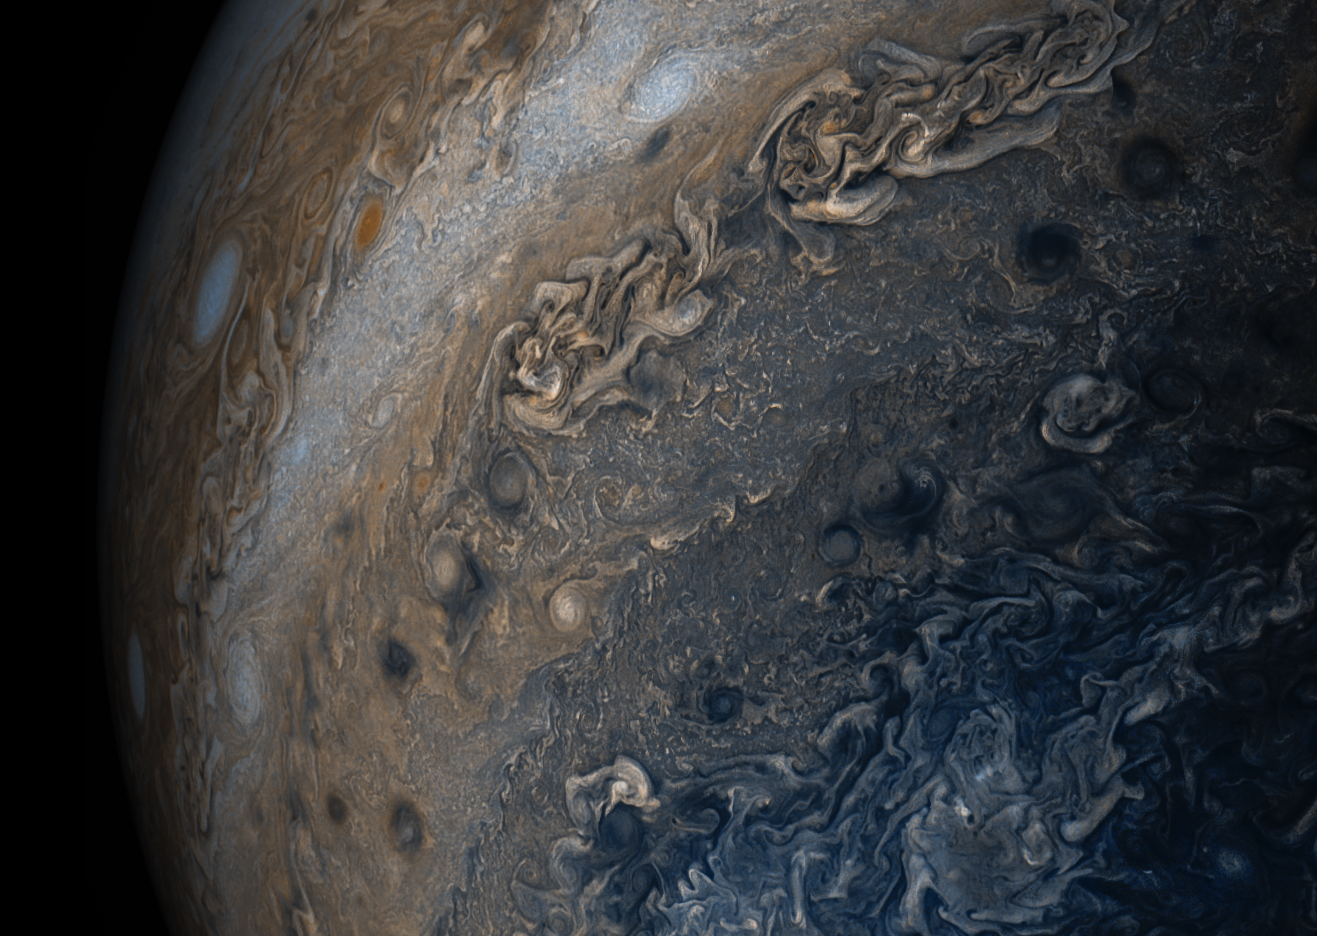 These new images of Jupiter show its clouds in stunning detail